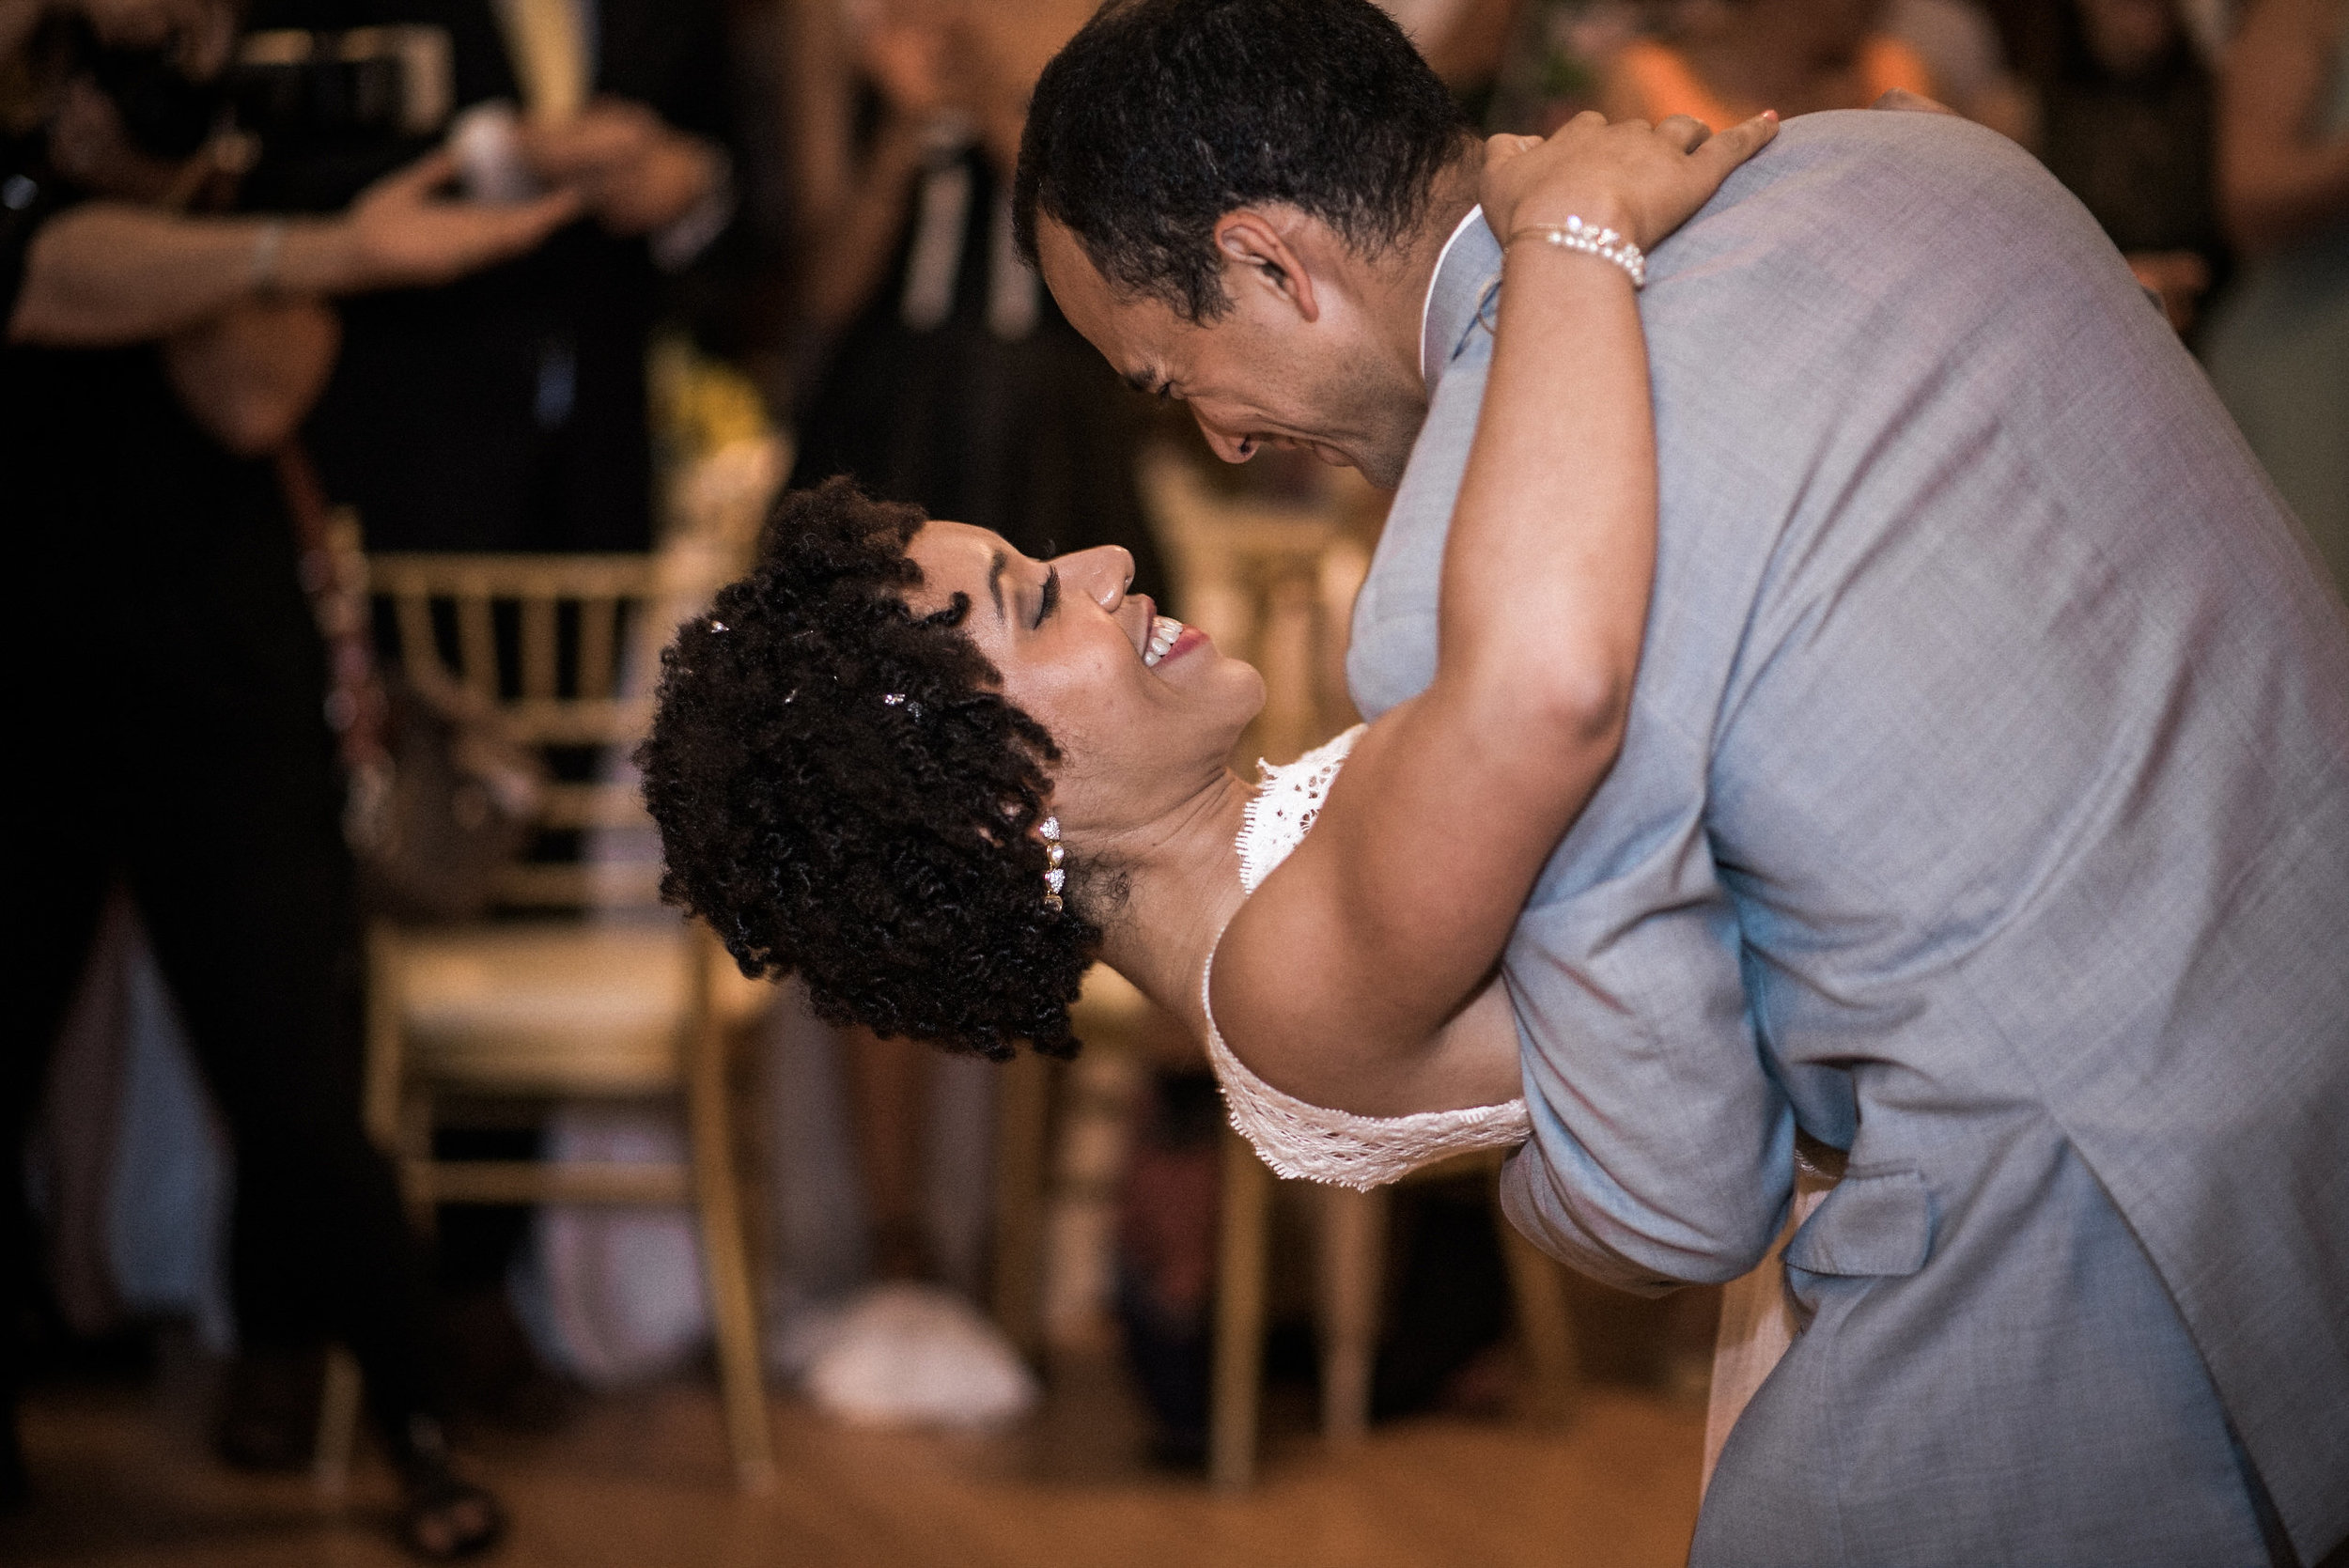 Groom dips bride during dance